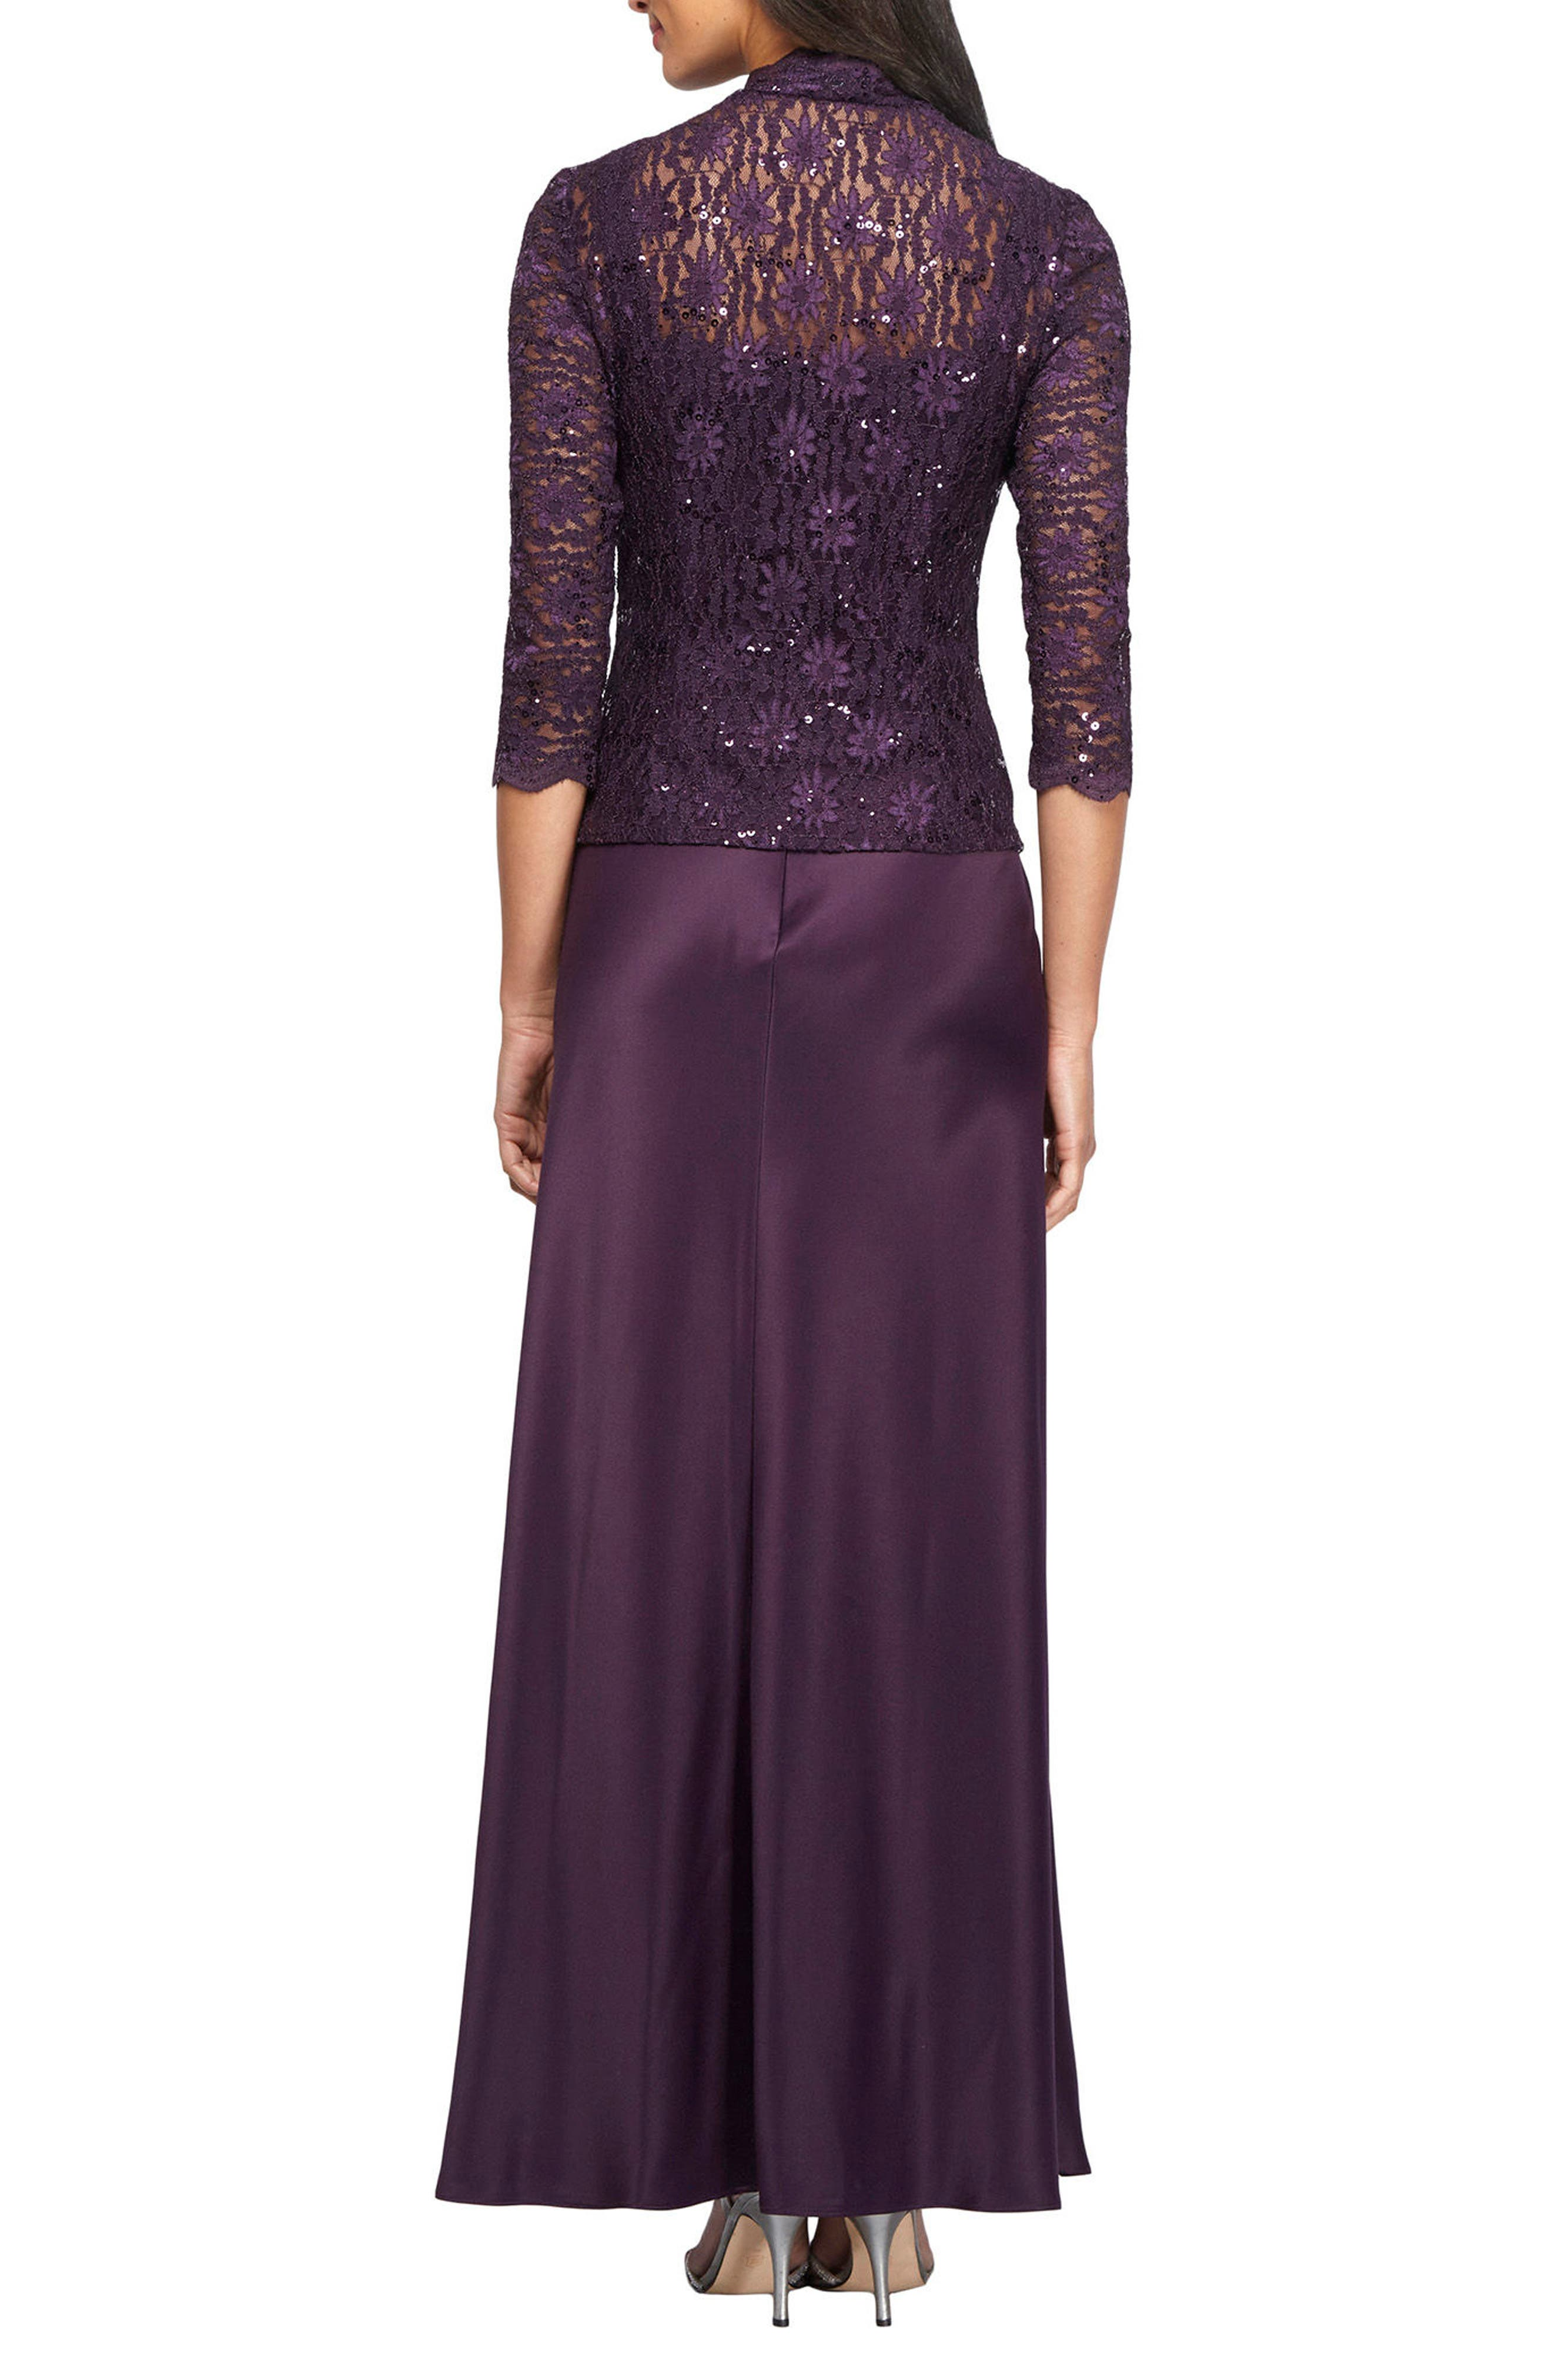 Alternate Image 3  - Alex Evenings Sequin Lace & Satin Gown with Jacket (Regular & Petite)